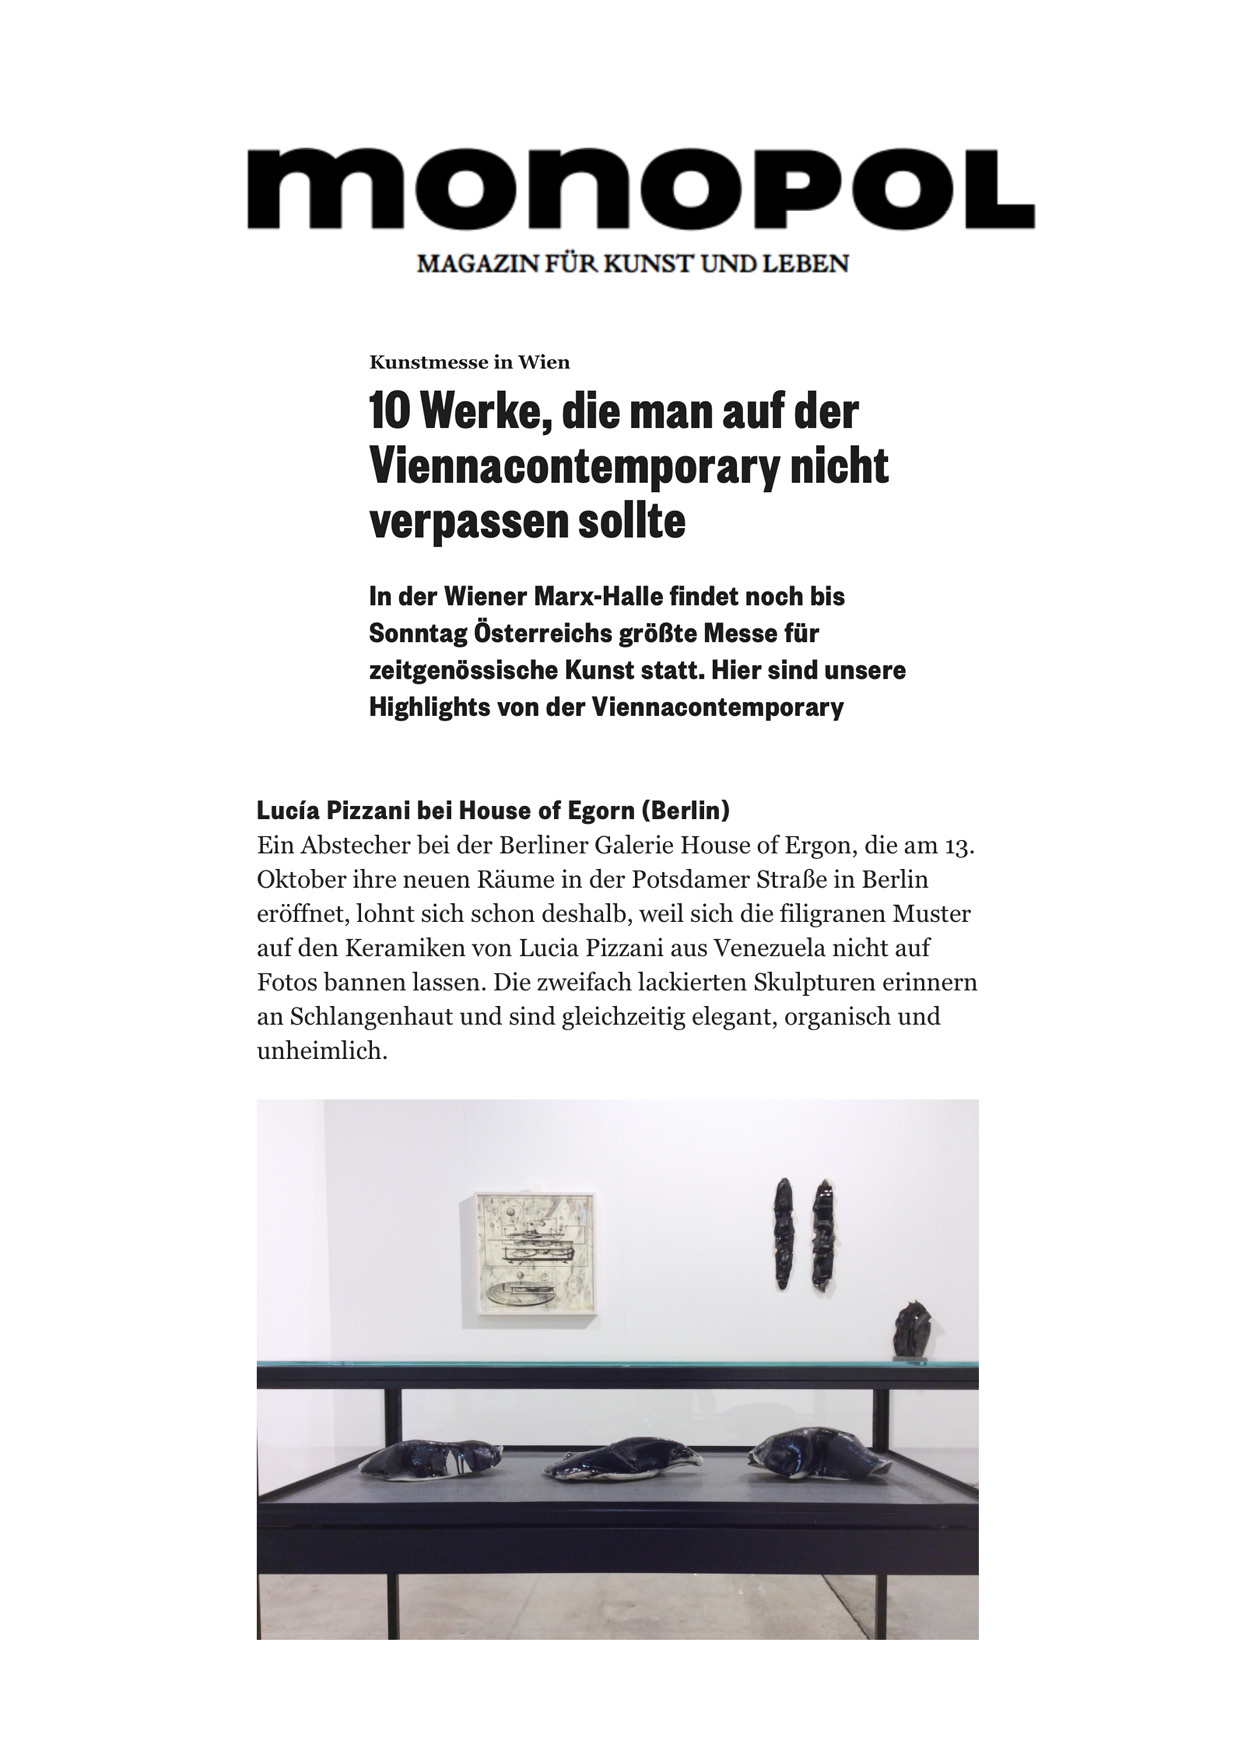 Picked by  Monopol  as one of the 10 best of the Vienna Contemporary!